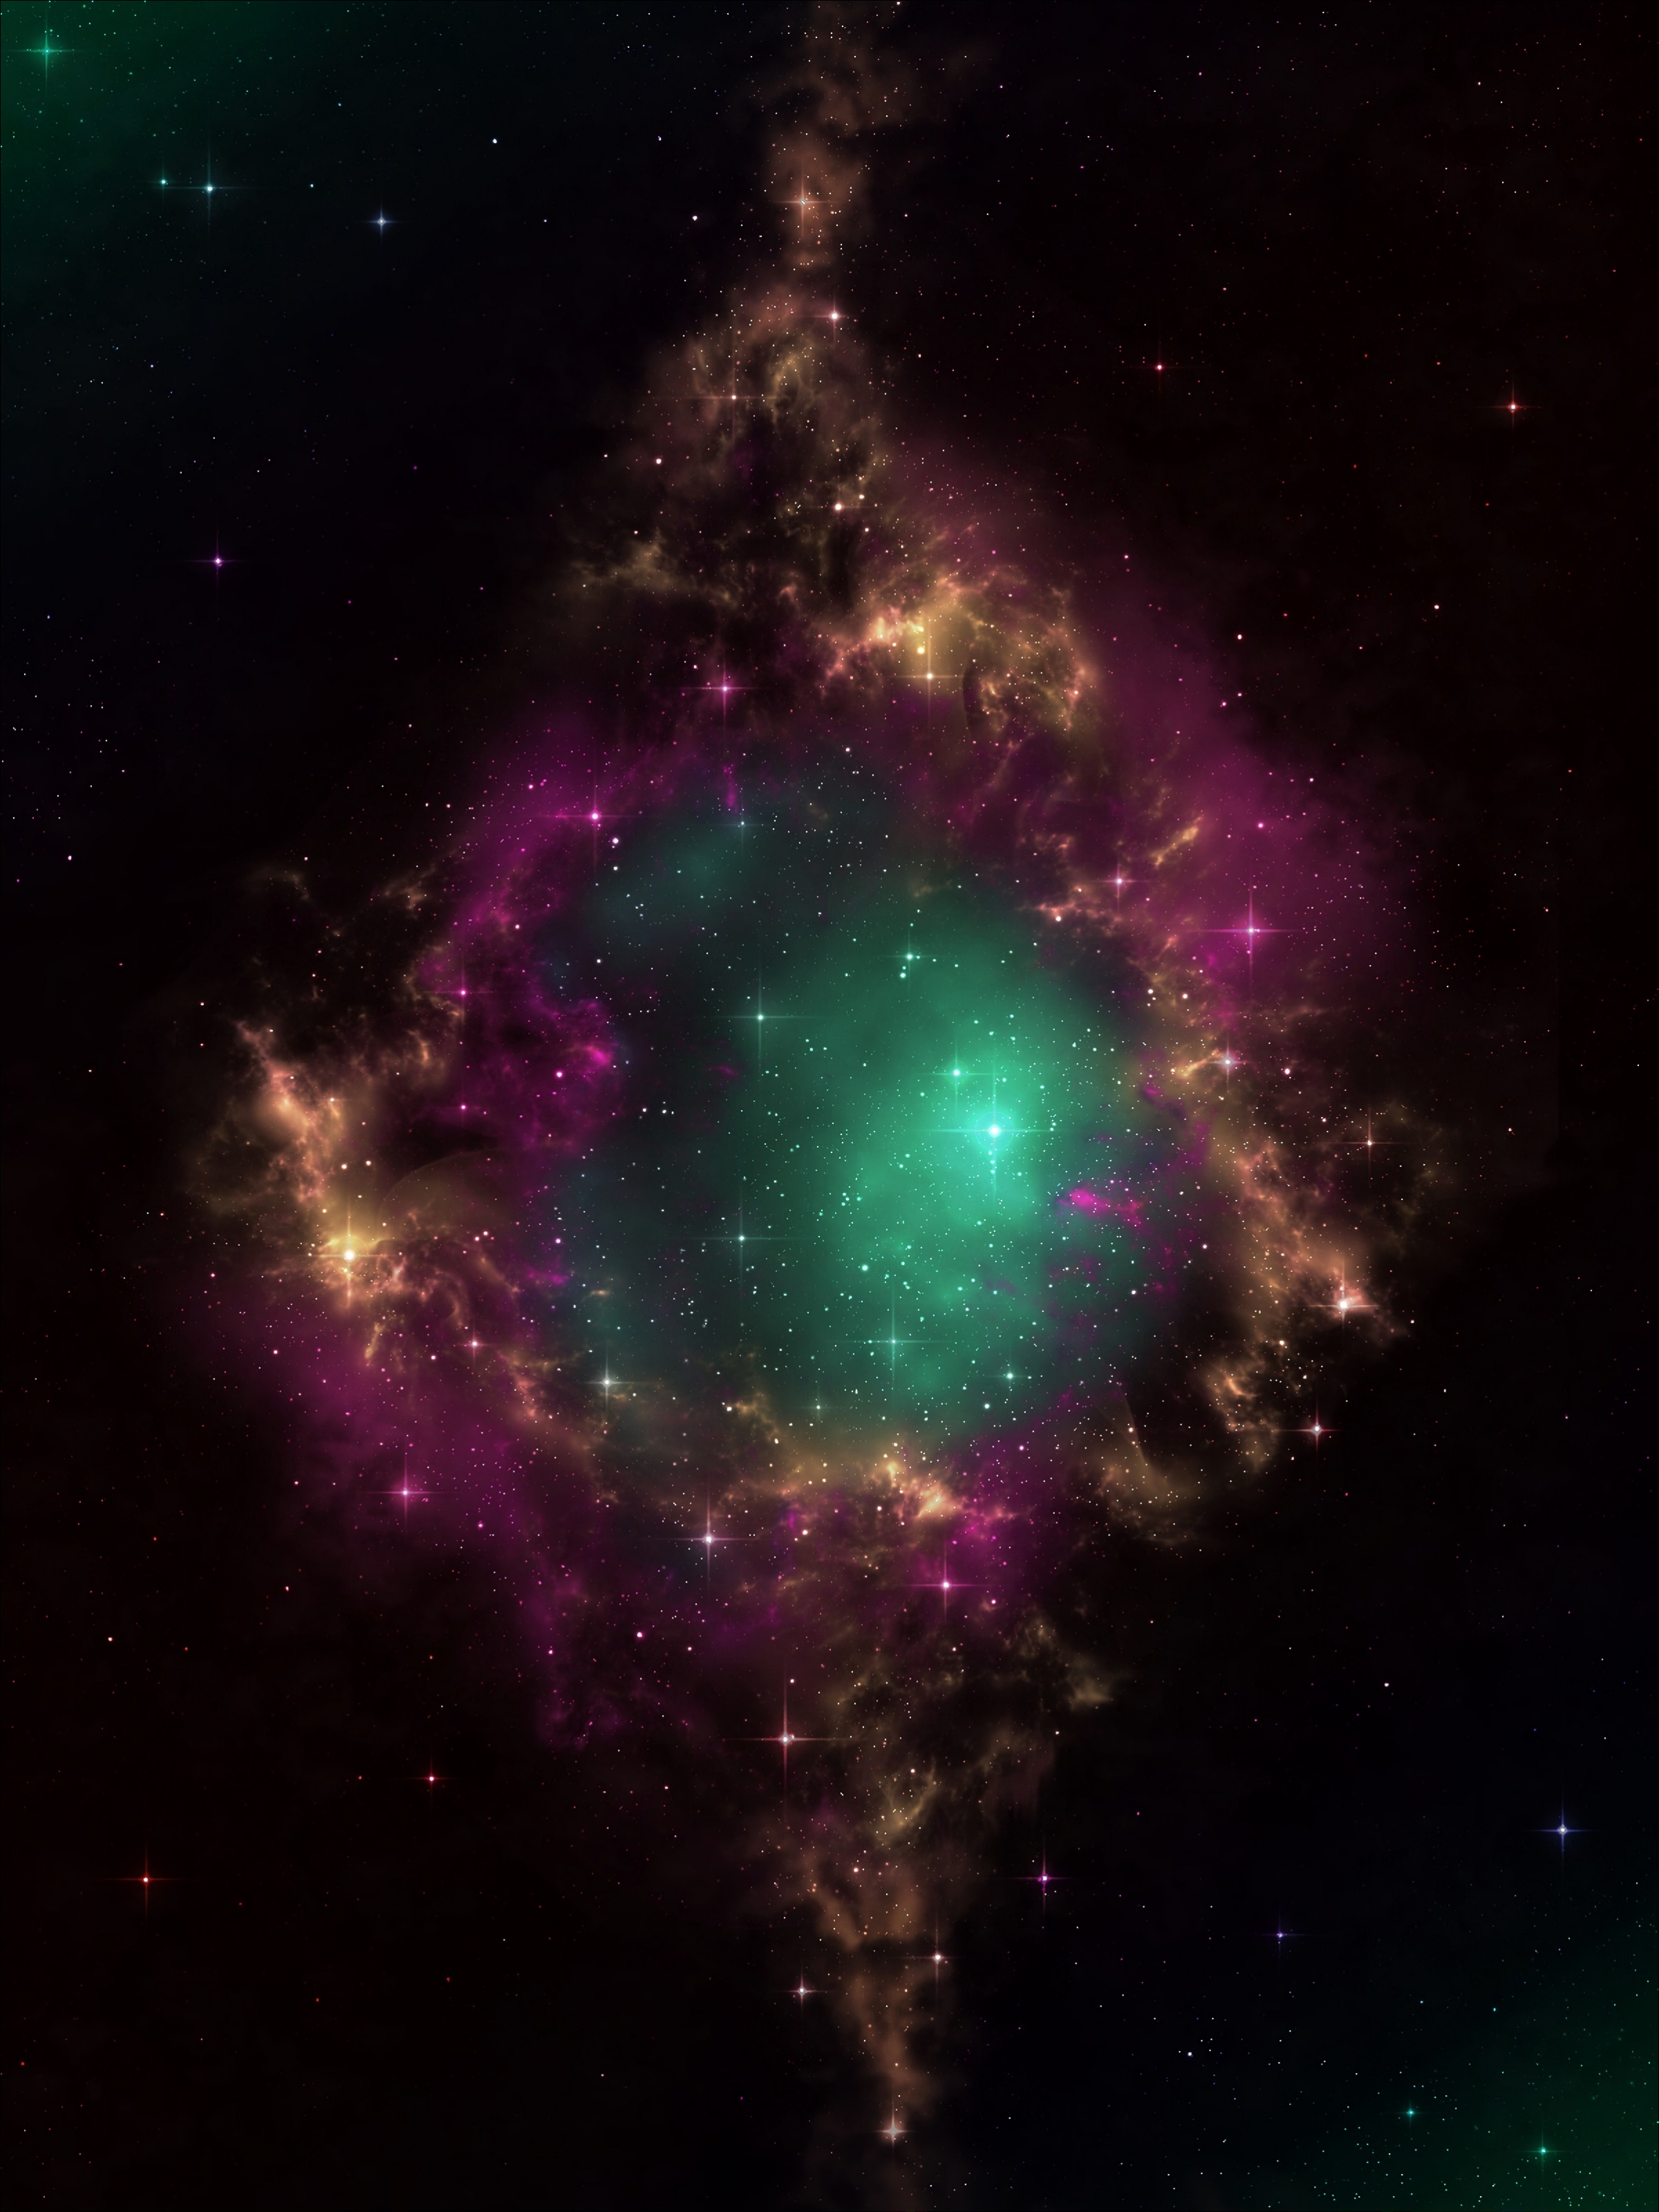 89268 download wallpaper Galaxy, Universe, Portal, Nebula, Congestion, Conglomeration, Open Space, Stars screensavers and pictures for free